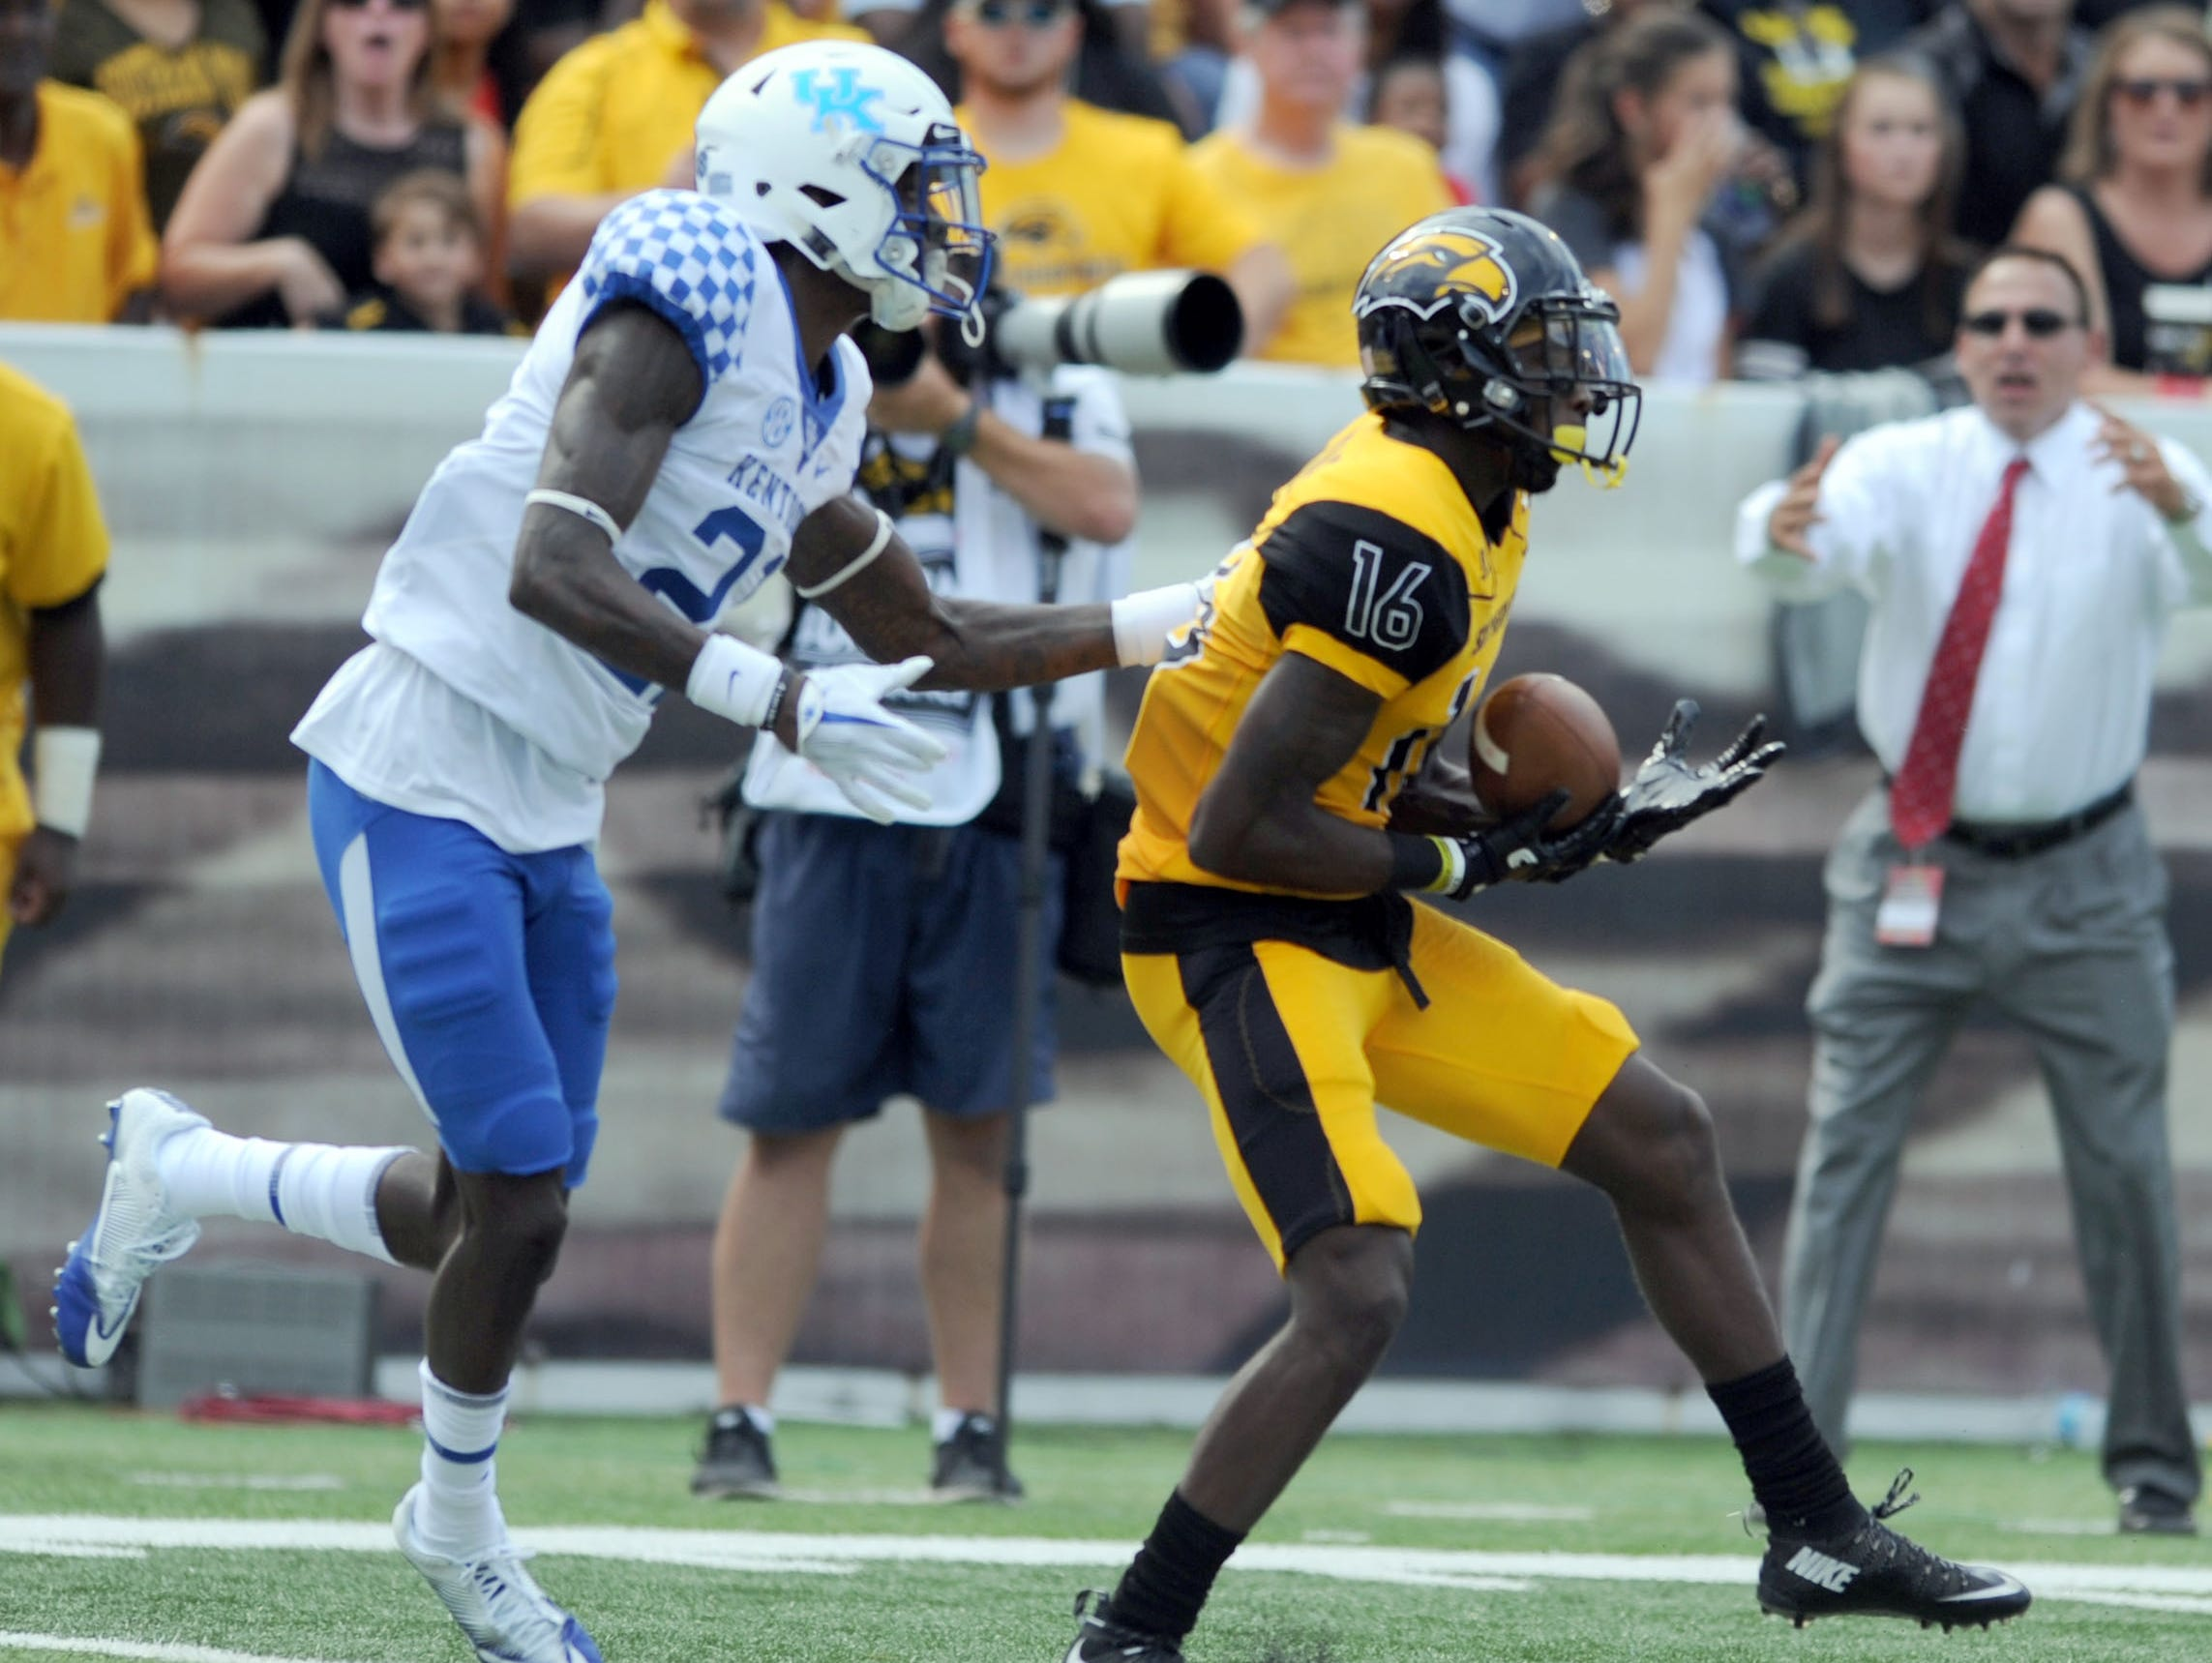 Southern Miss wide receiver Quez Watkins catches the ball in a game against Kentucky at M.M. Roberts Stadium on Saturday.